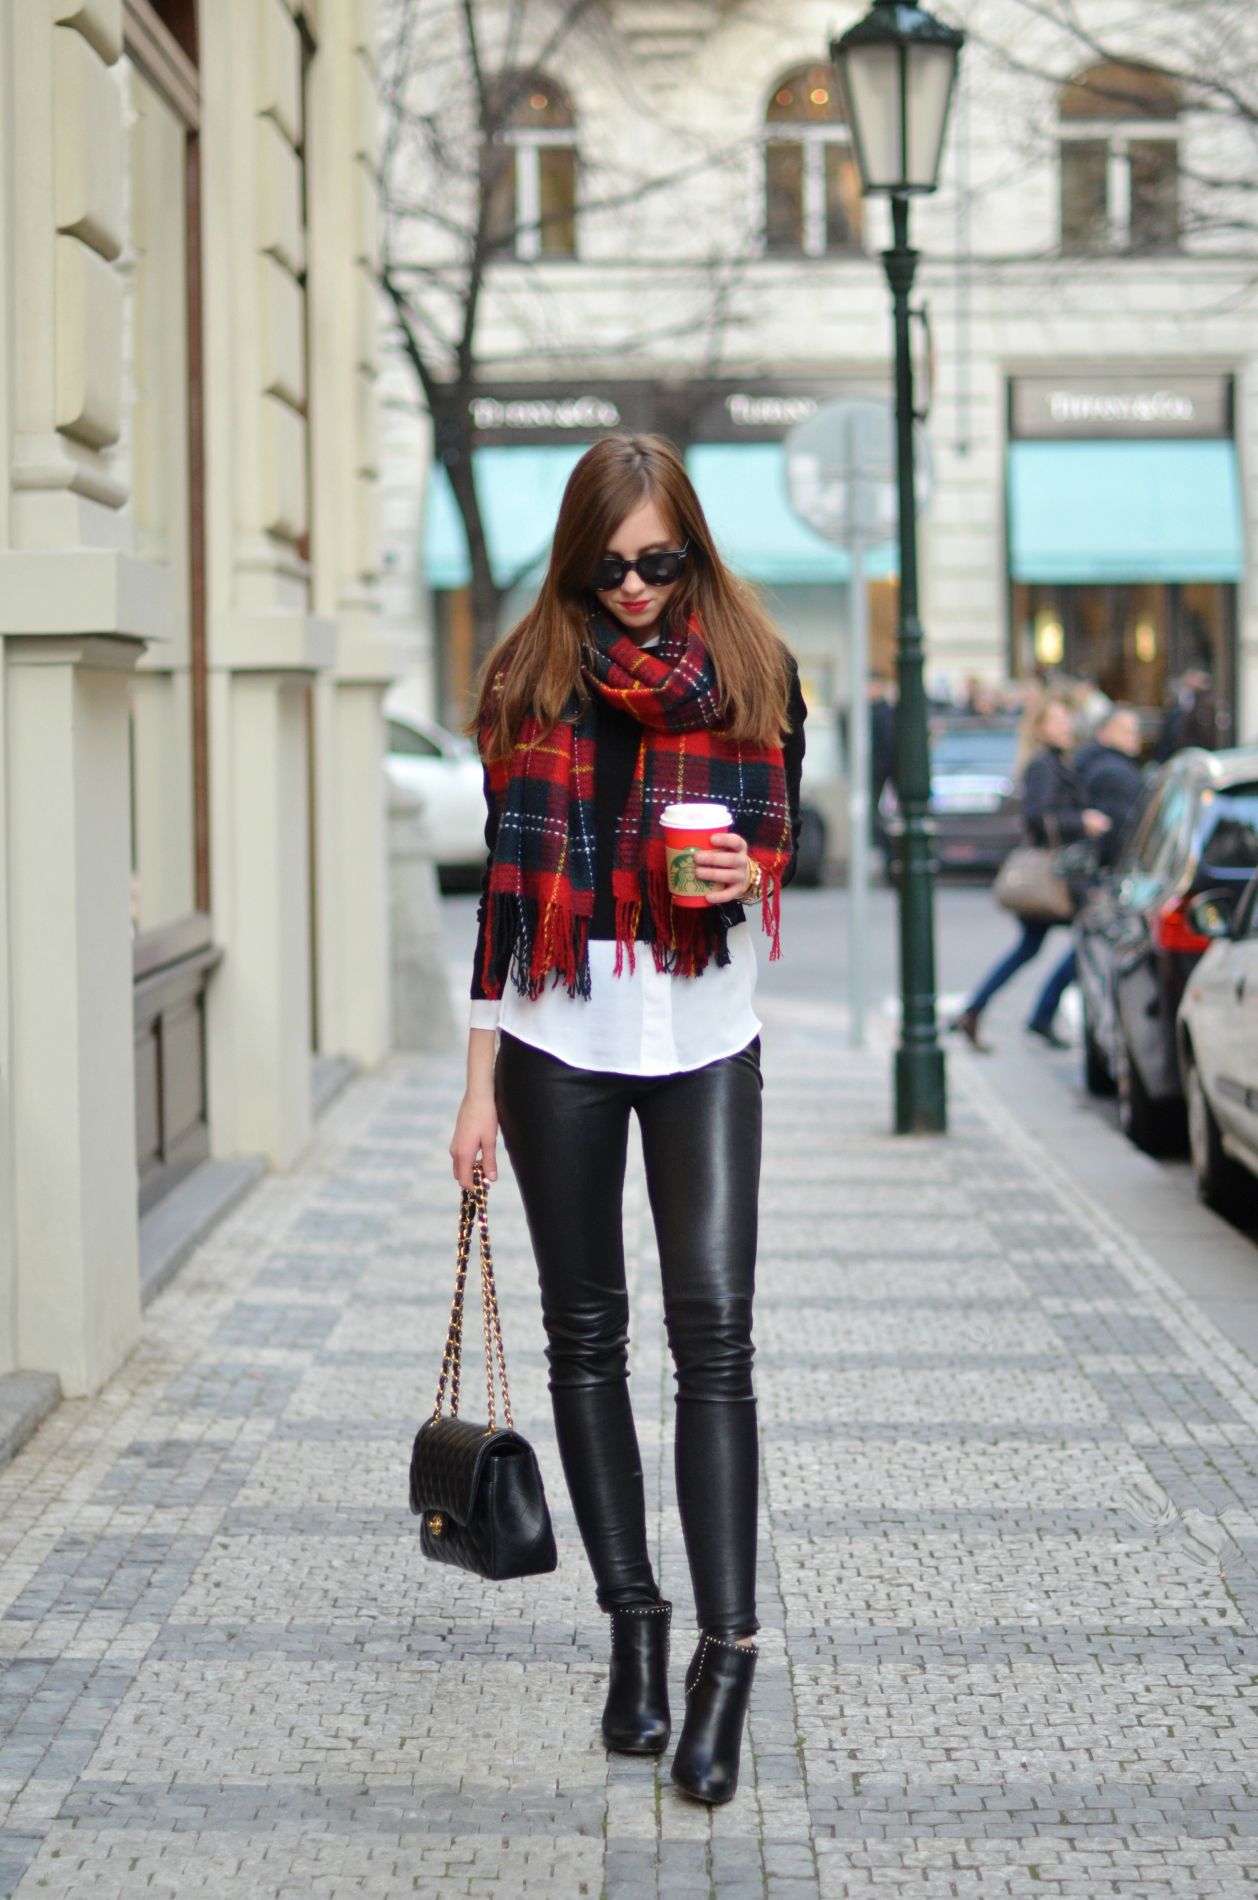 A statement tartan scarf is the ultimate must have winter item. Barbora Ondrackova brightens up an otherwise monochrome look with this cosy and stylish chunky scarf. Shirt: Topshop, Sweater: Mango, Leggings: Balenciaga, Boots: Givenchy, Bag: Chanel.